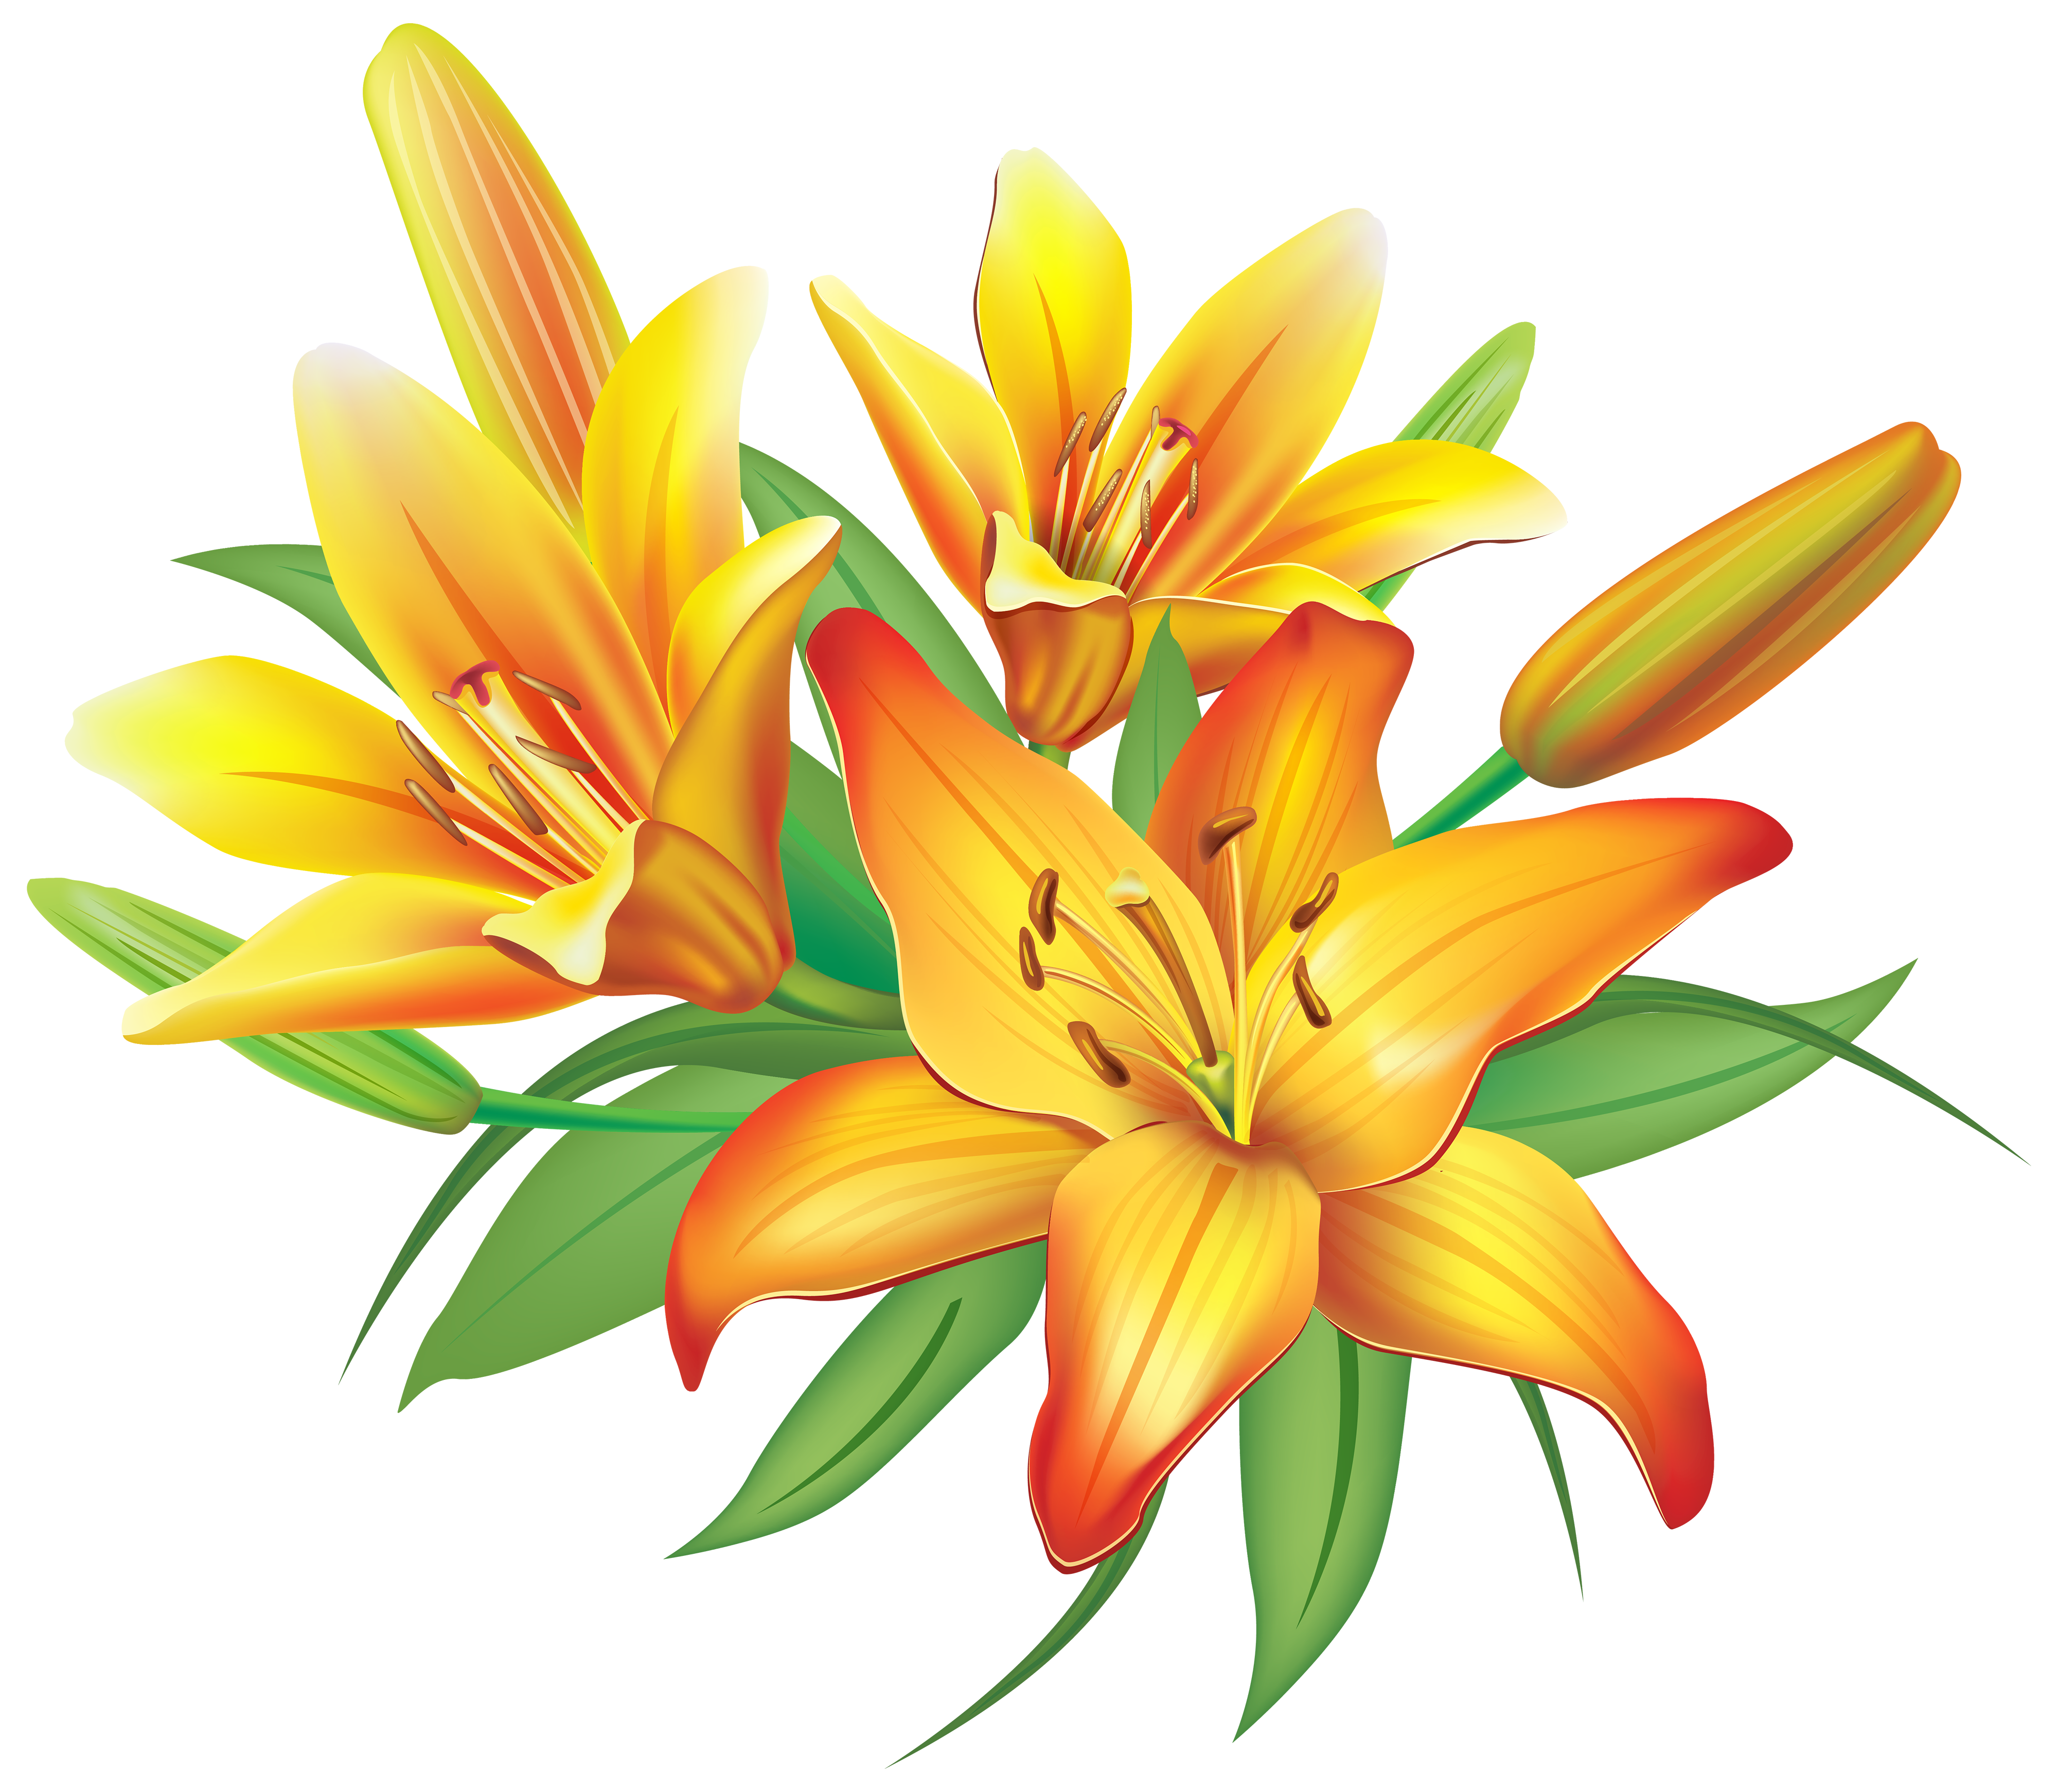 Lily clipart orange lily. Yellow lilies flowers decoration